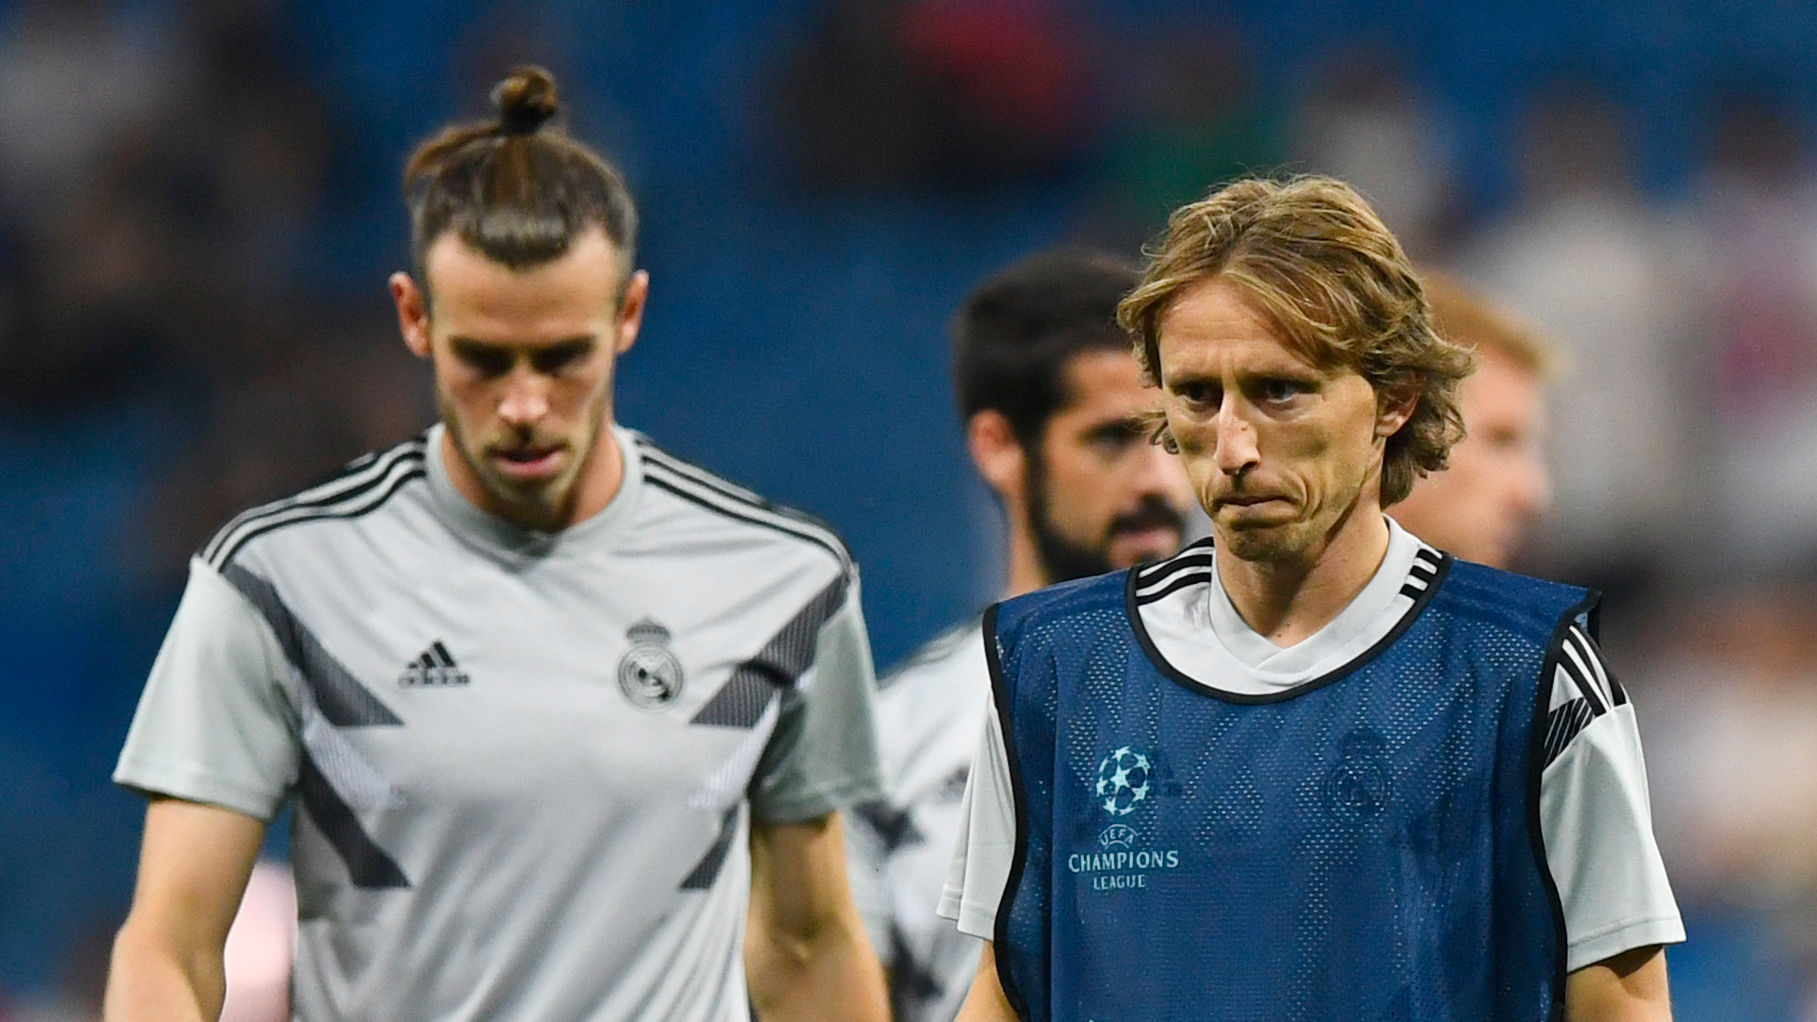 'Bale speaks Spanish, he's just shy' - Modric defends 'spectacular' ex-Real Madrid team-mate